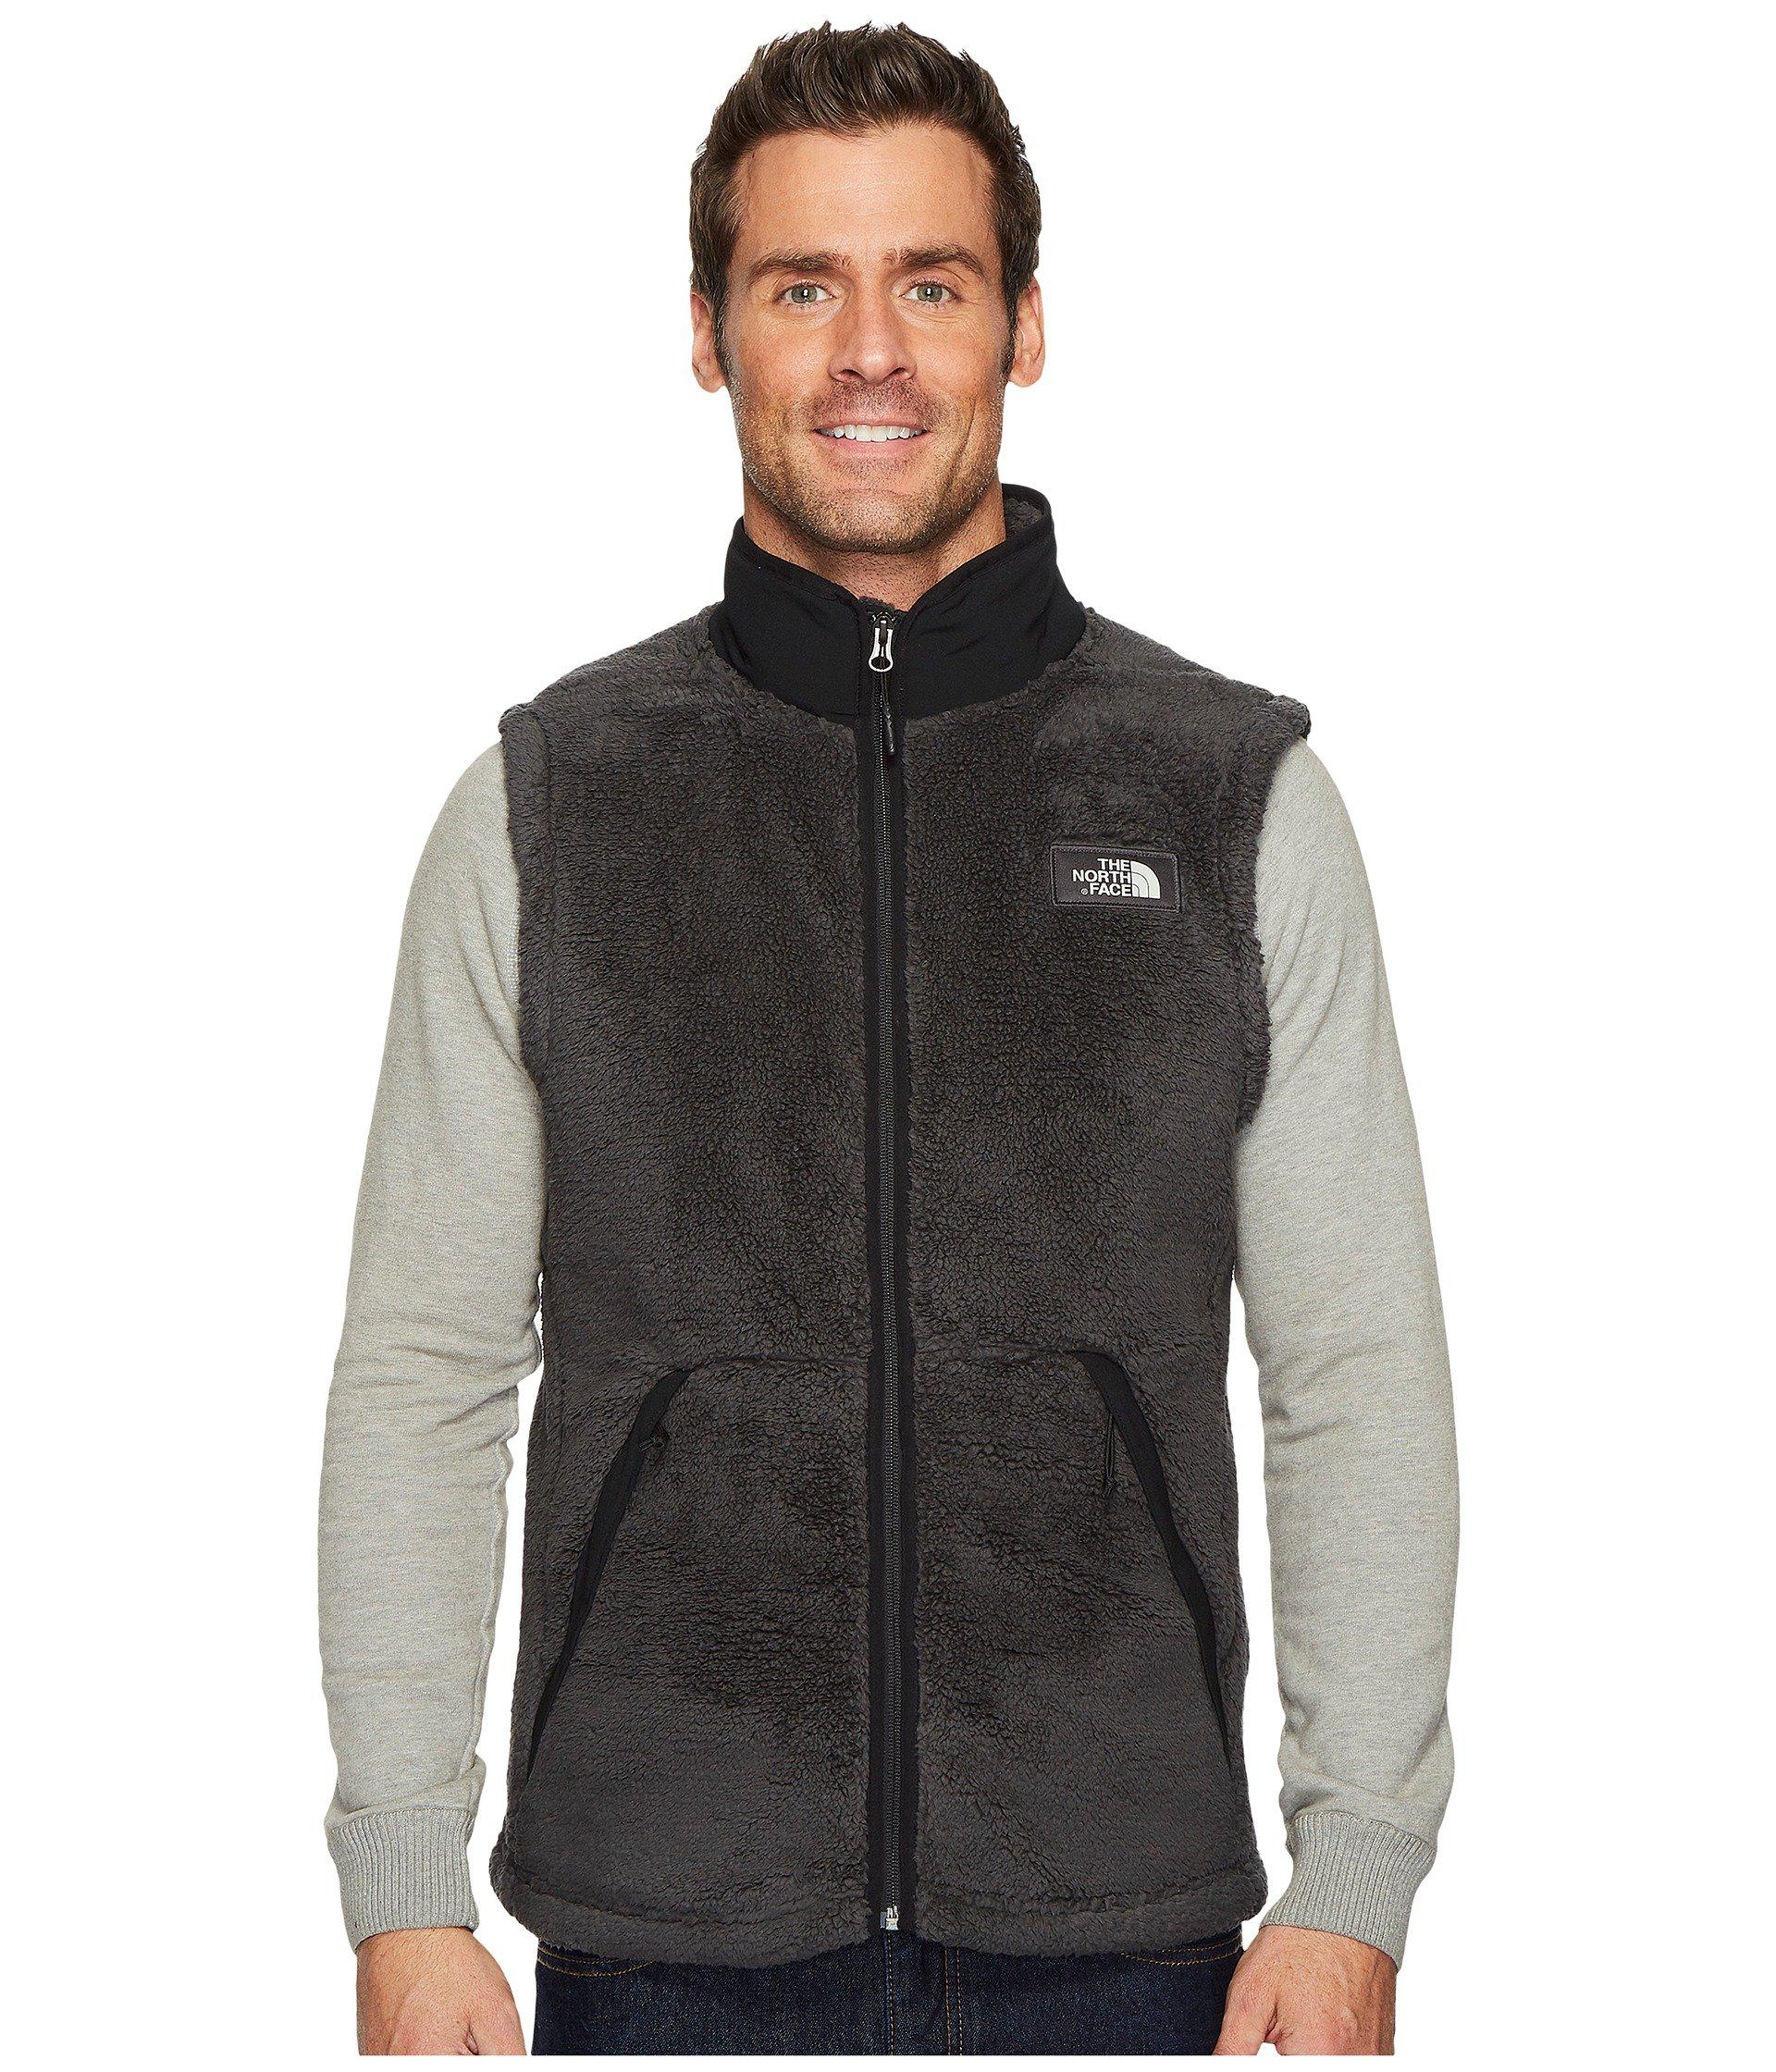 b845a21d2 The North Face Gray Campshire Vest for men